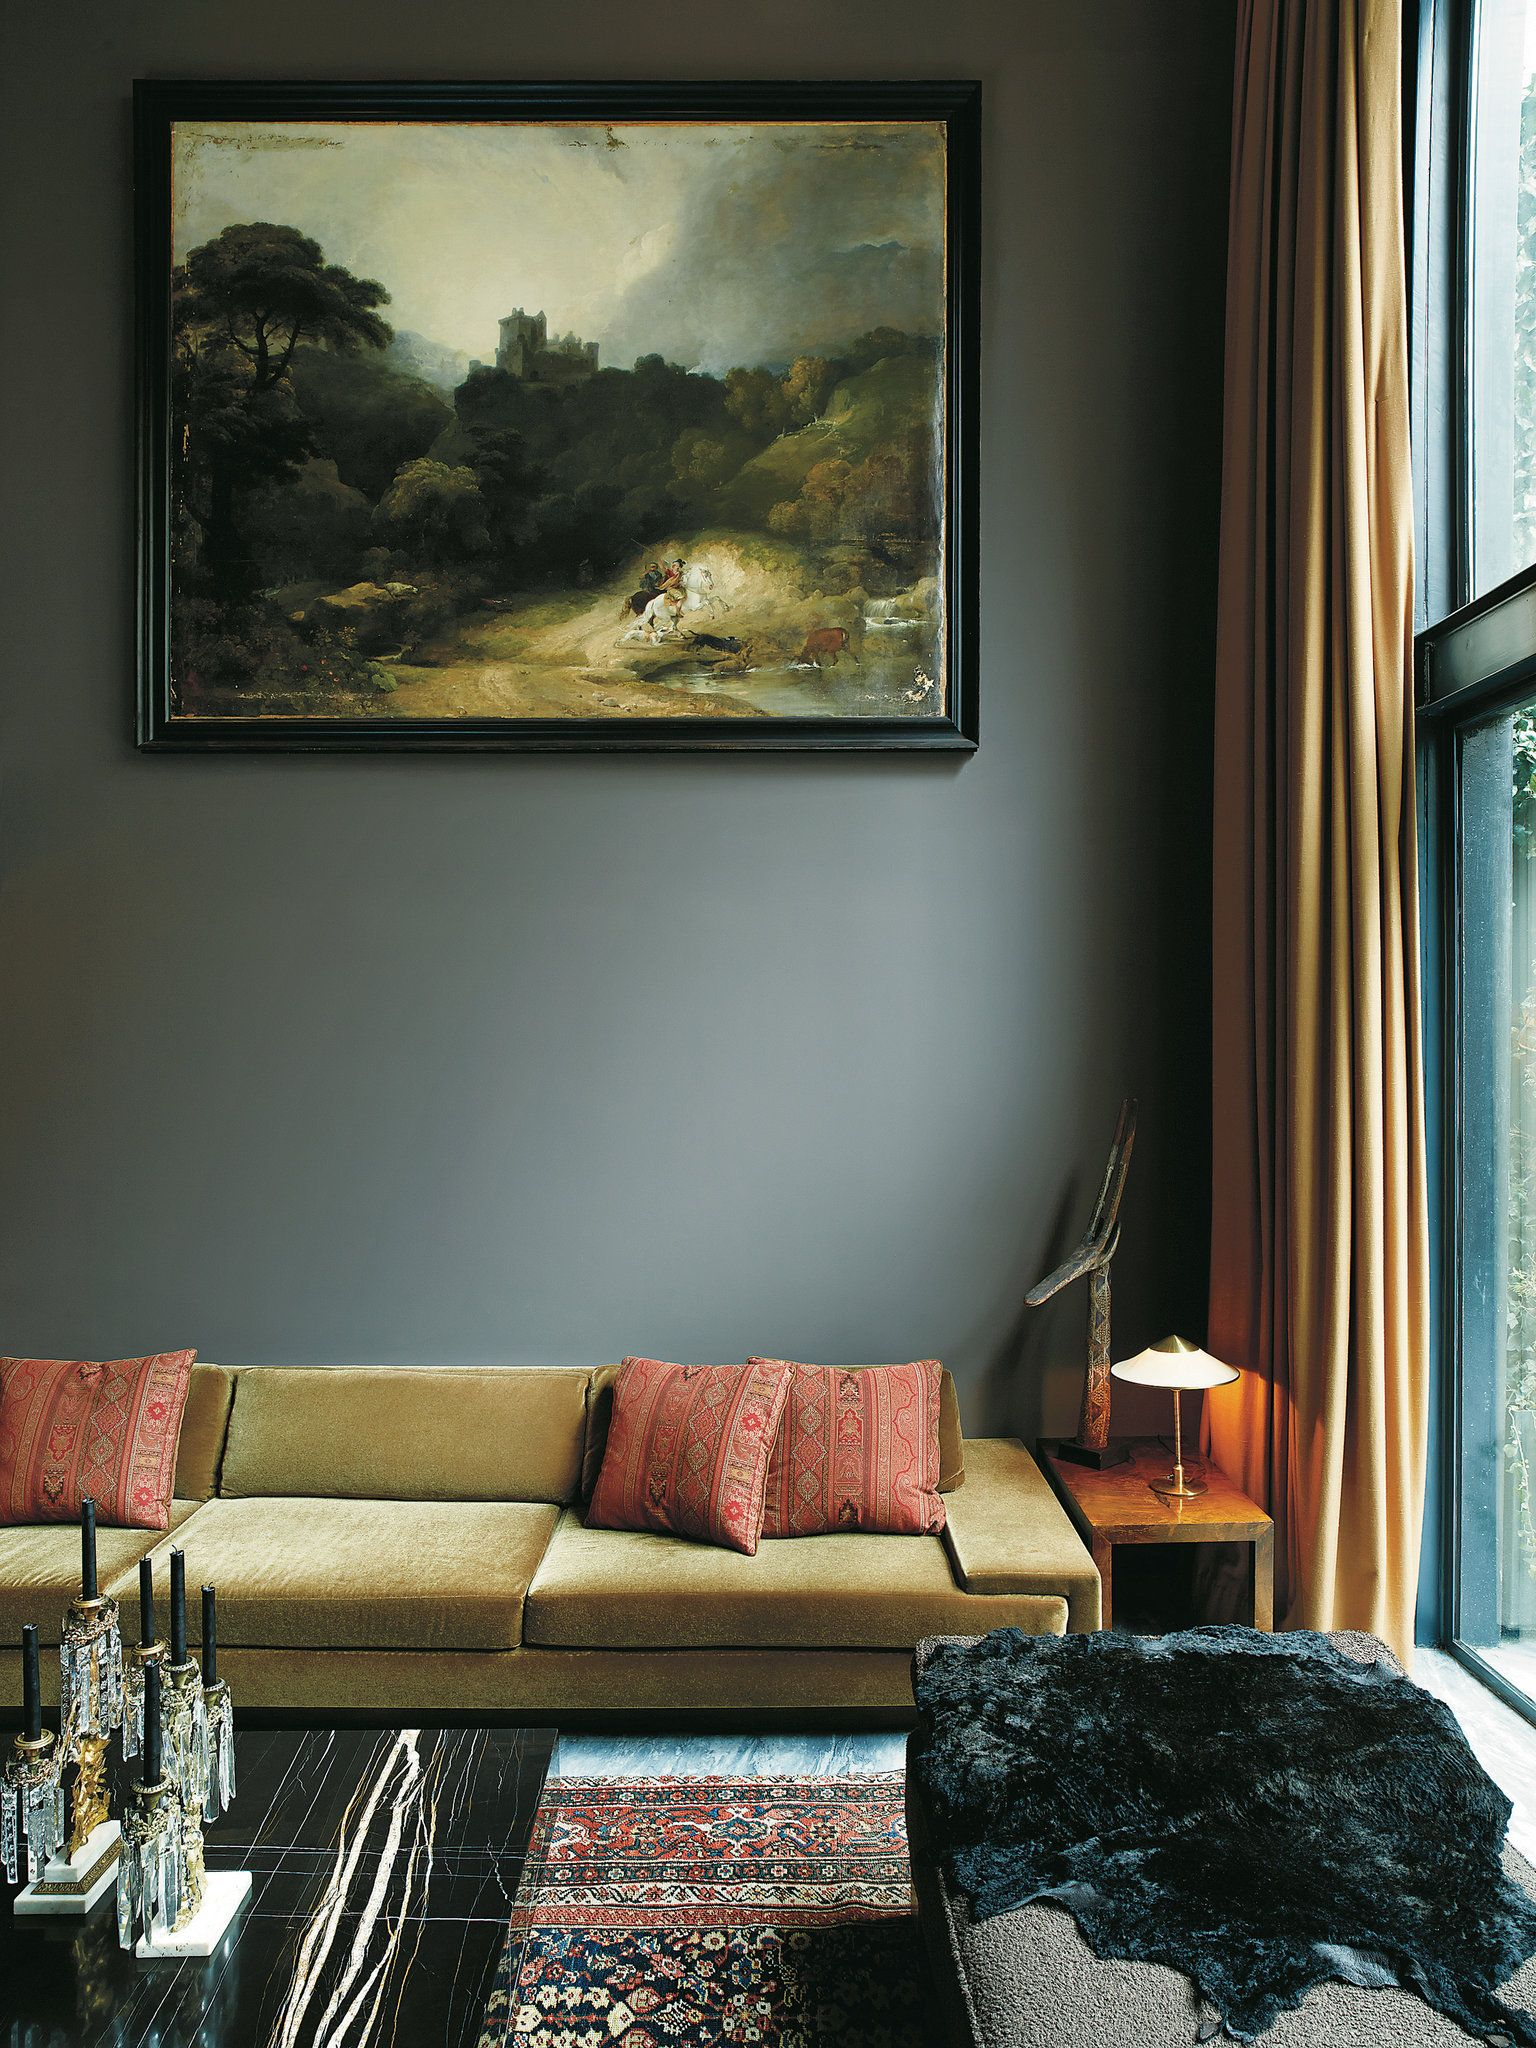 The Most Breathtaking Rooms T Featured This Year | Wohnzimmer ...